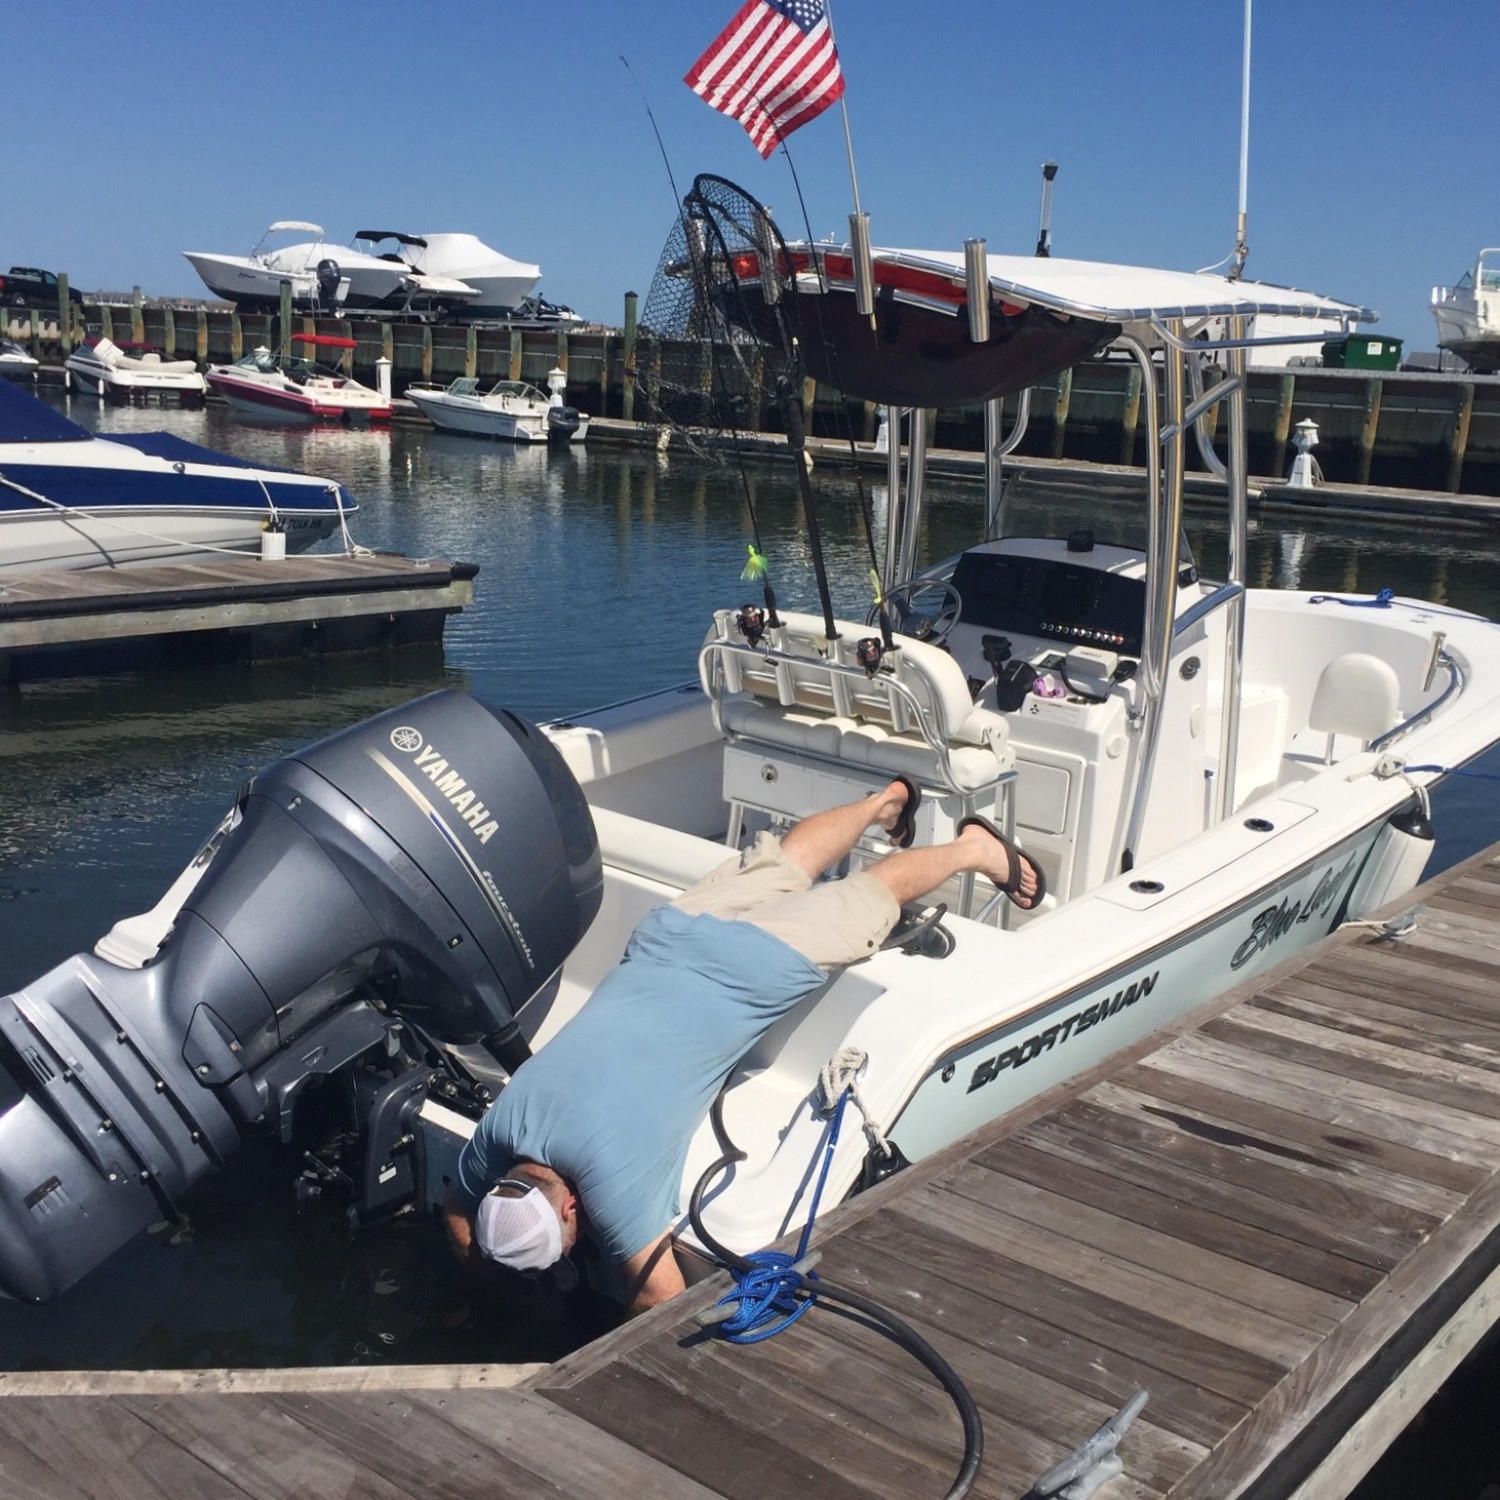 Title: Cleaning the trim tabs - On board their Sportsman Heritage 251 Center Console - Location: Stone Harbor Marina, NJ. Participating in the Photo Contest #SportsmanNovember2017